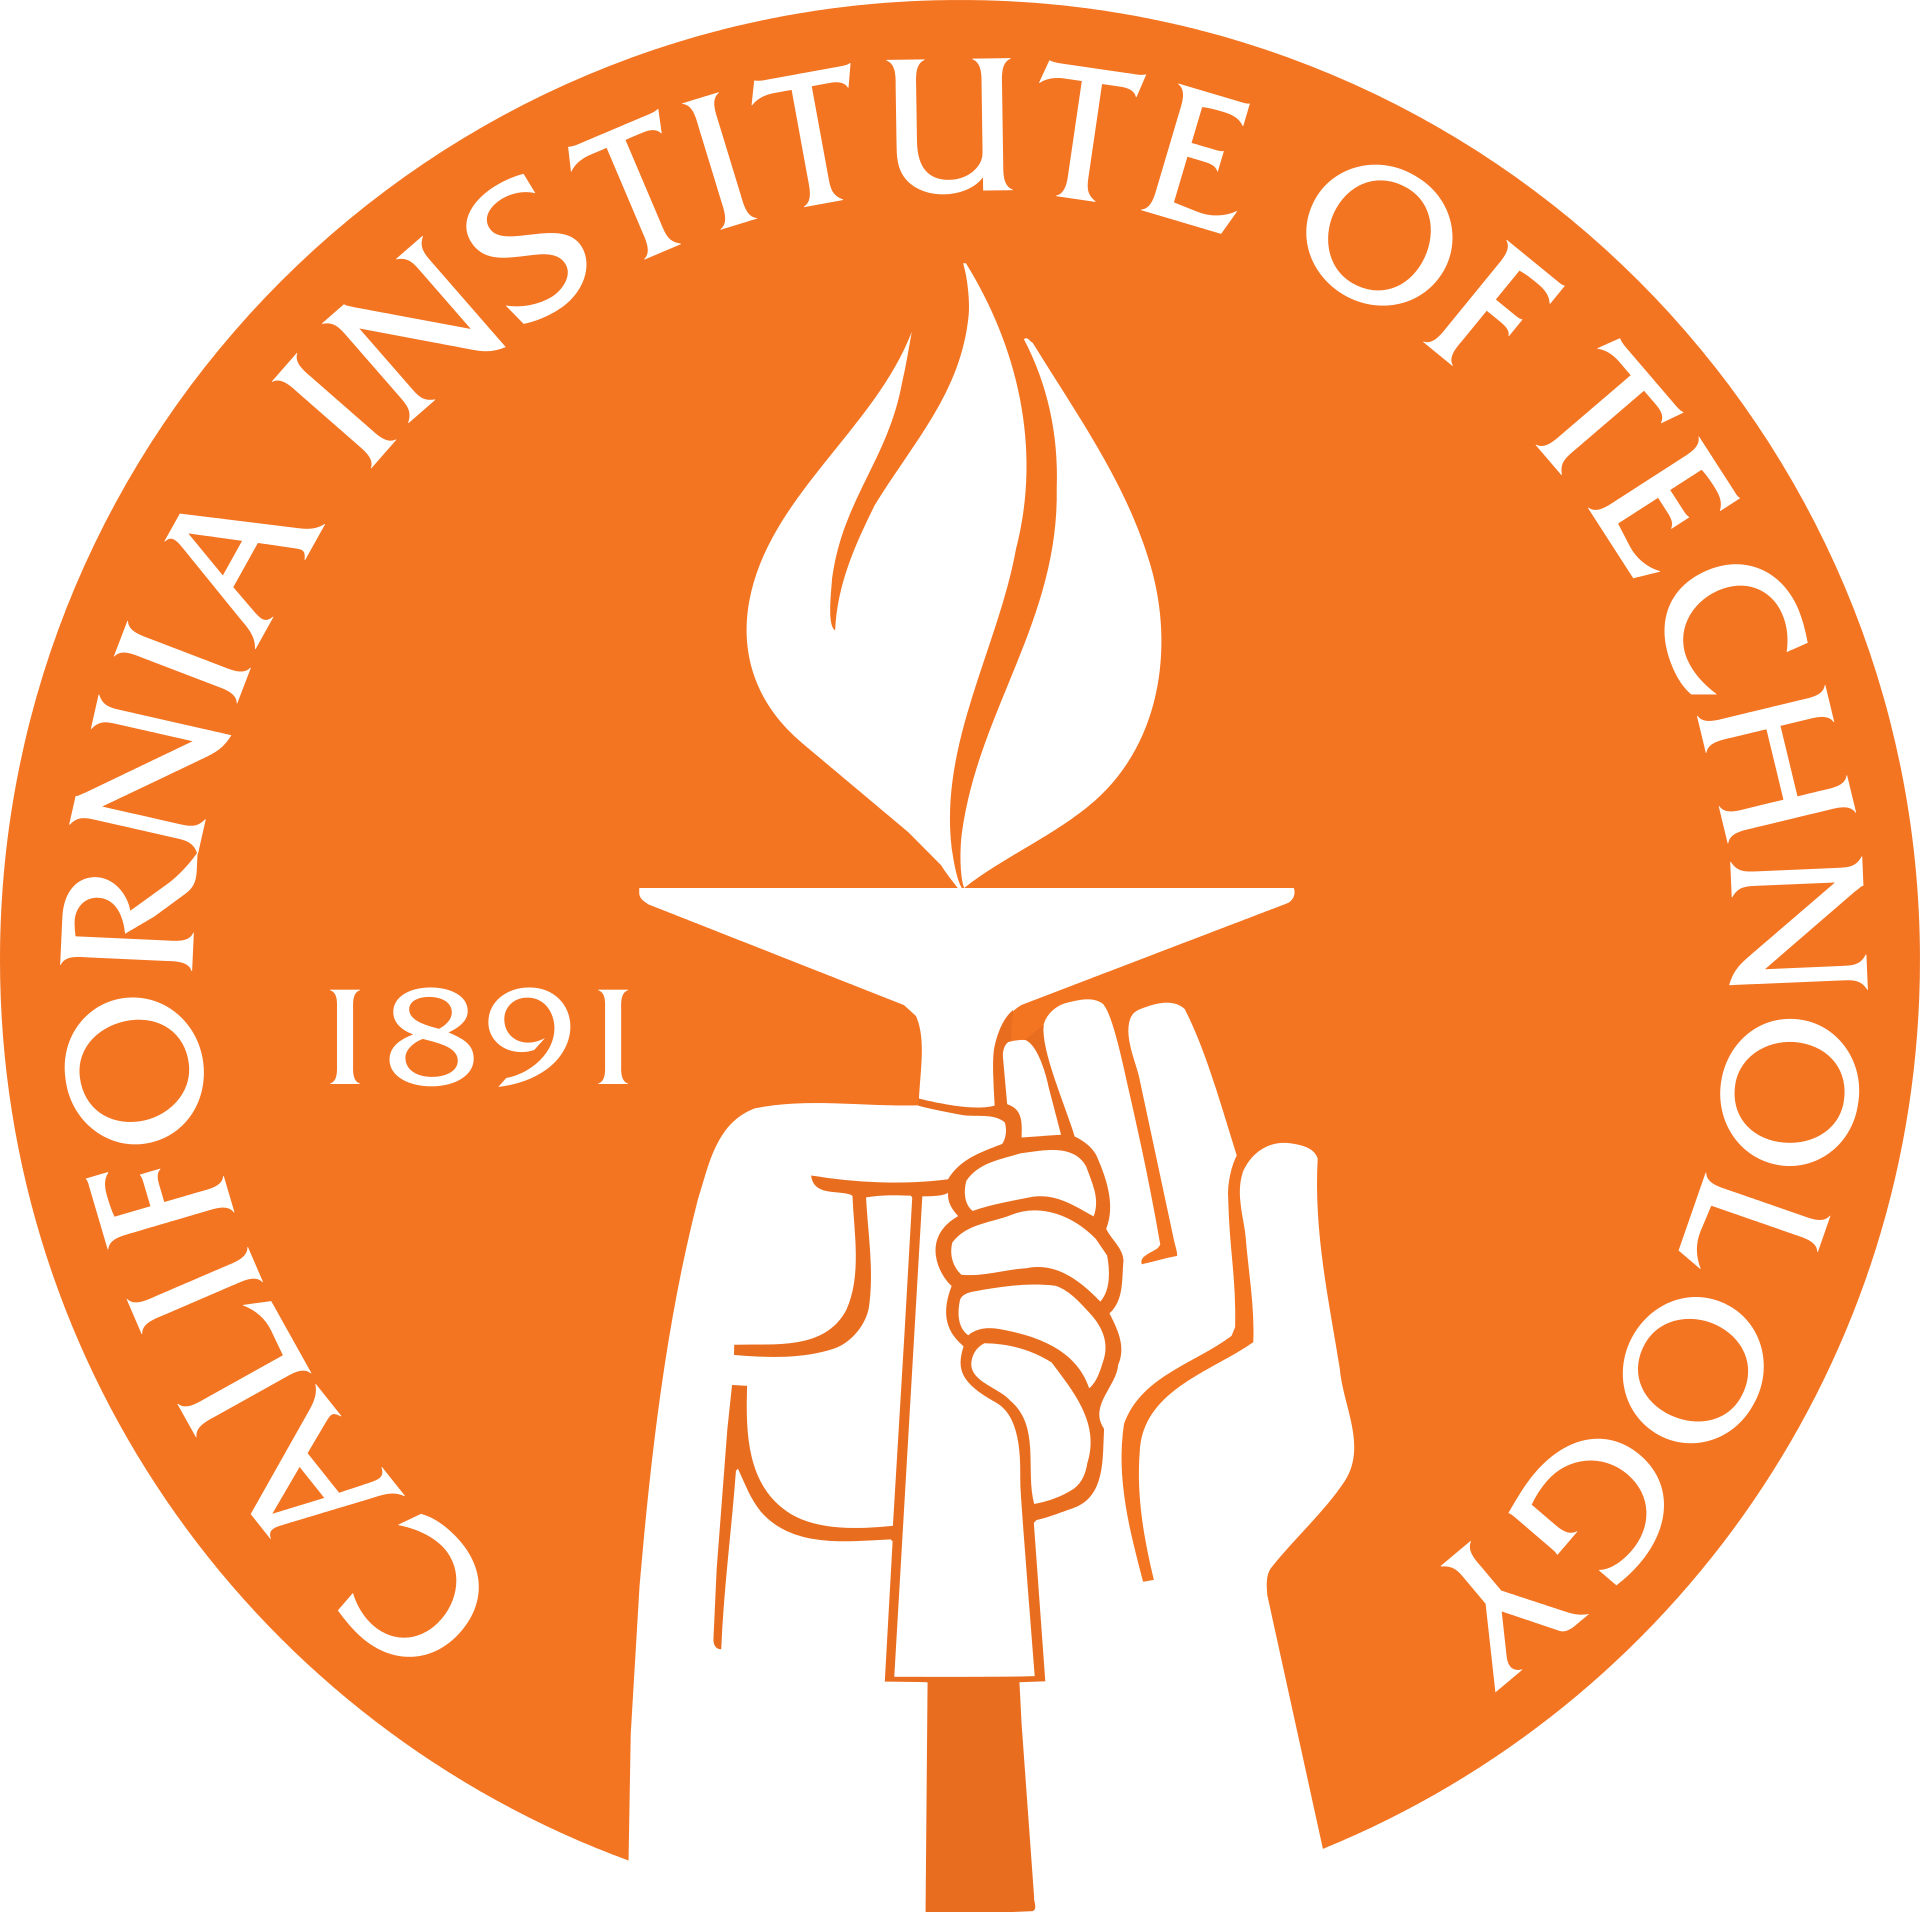 California Institute of Technology or Caltech is a private